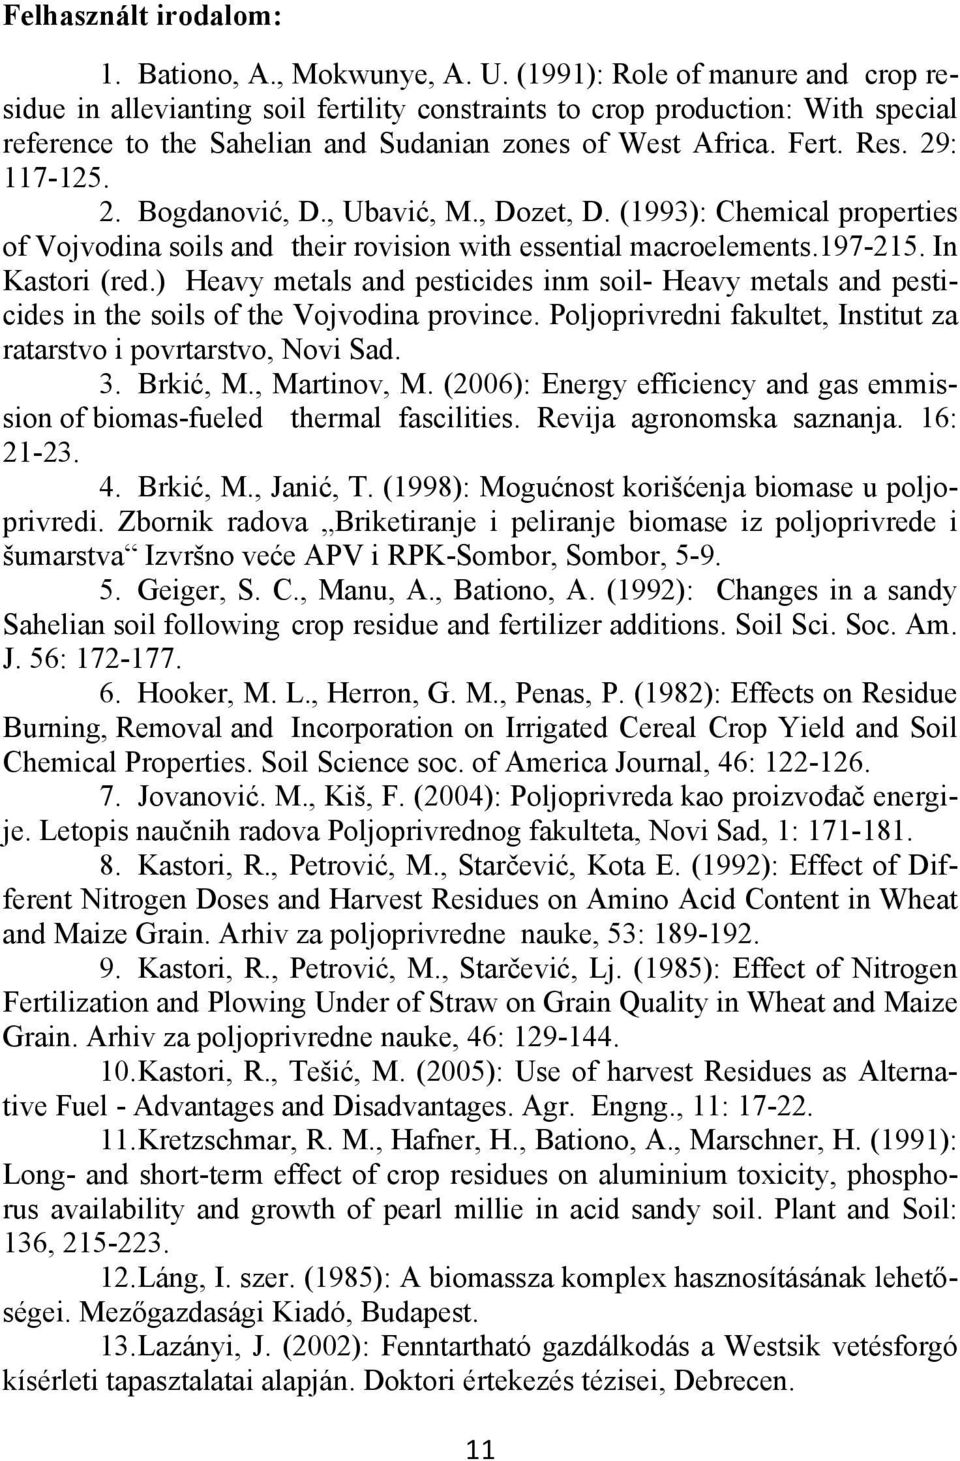 2. Bogdanović, D., Ubavić, M., Dozet, D. (1993): Chemical properties of Vojvodina soils and their rovision with essential macroelements.197-215. In Kastori (red.